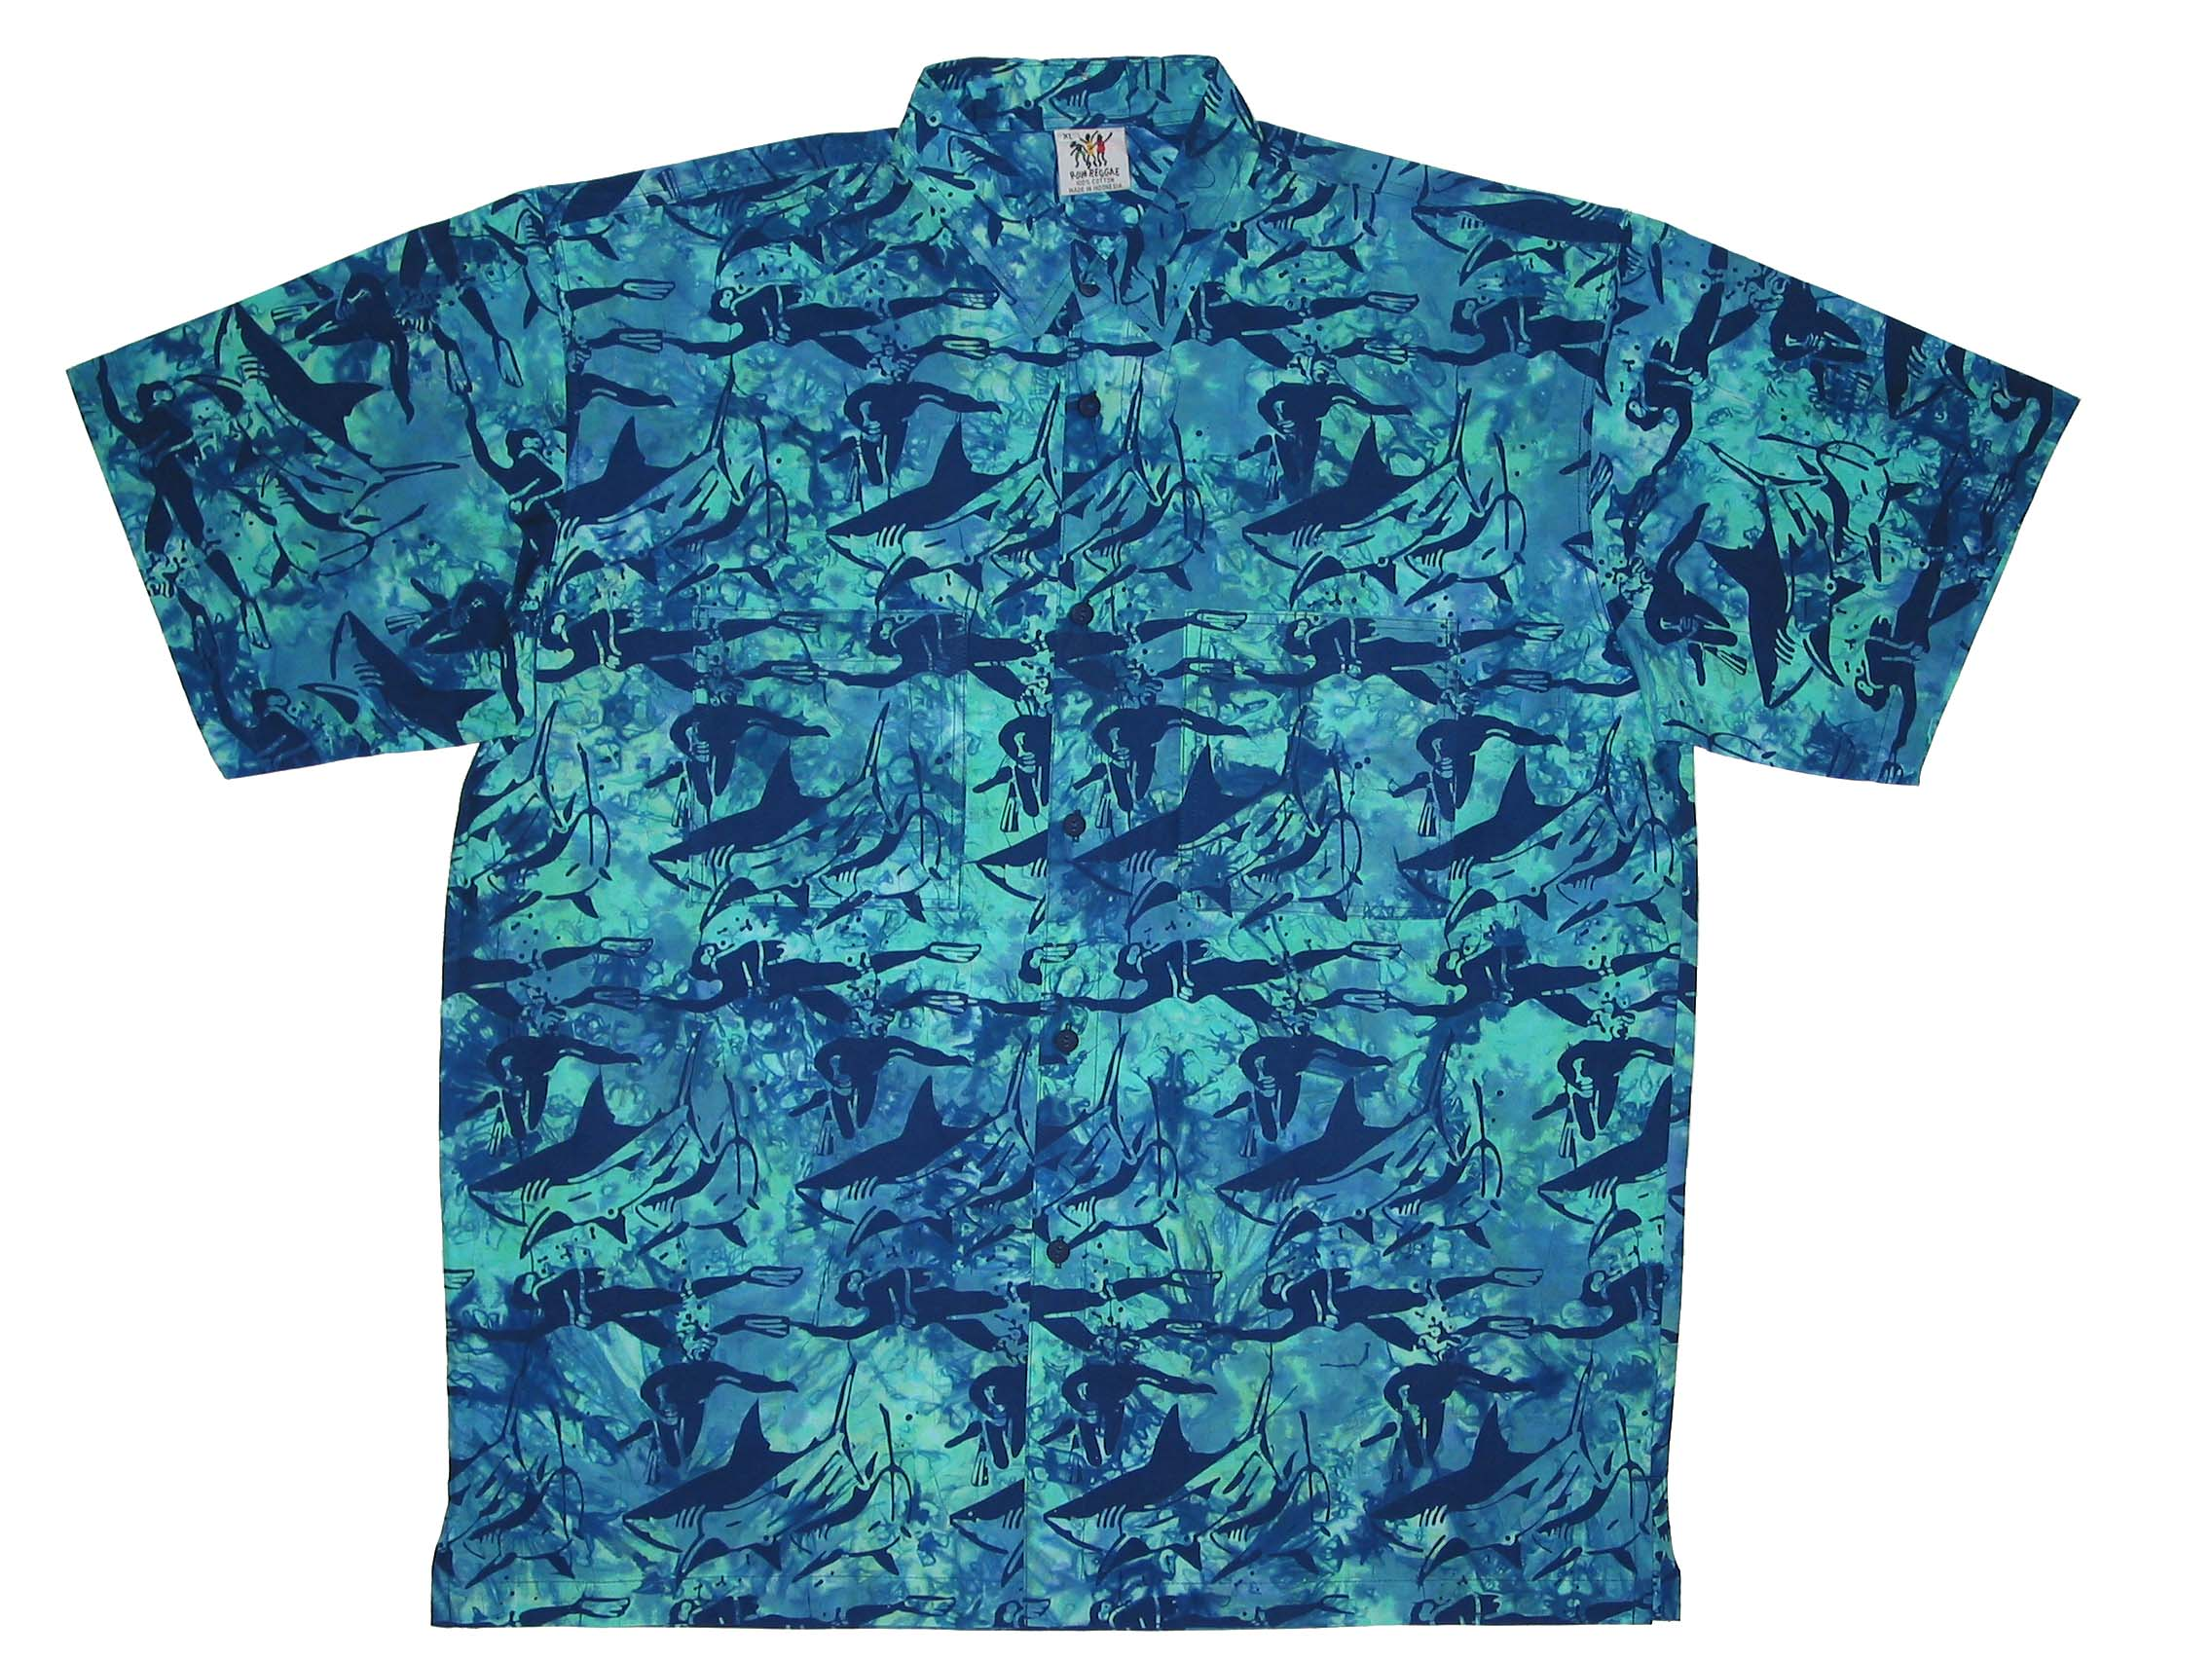 Close_Encounter_Batik_Rum_Reggae_Clothing_Handmade_Cabana_Shirt_Mako_Great_White_Hammerhead_Shark_Sharks_Vacation_Holiday_Island_Indonesia_Bali_Java_Hawaii_Caribbean_Equator_California_Tahiti_Fish_Shells_Style_Lagoon